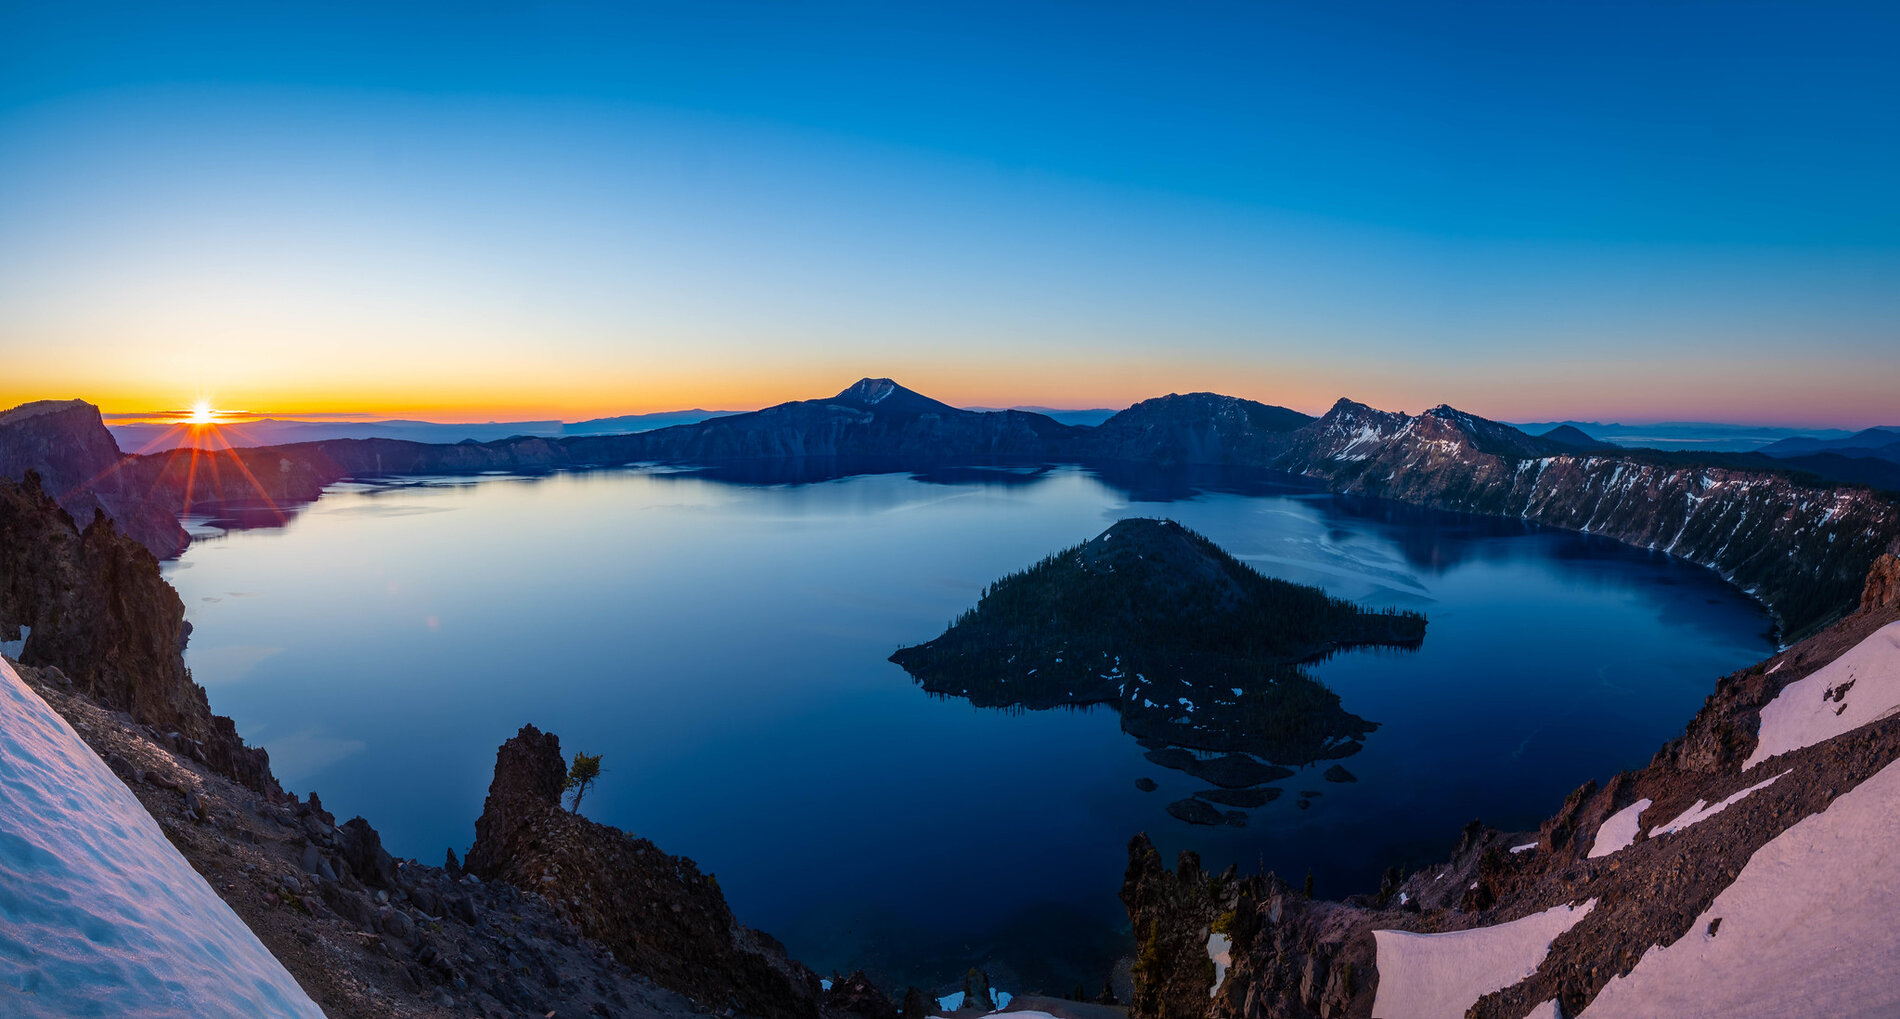 Crater-Lake-photo-by-CEBImagery-via-Flickr-CC2.jpg